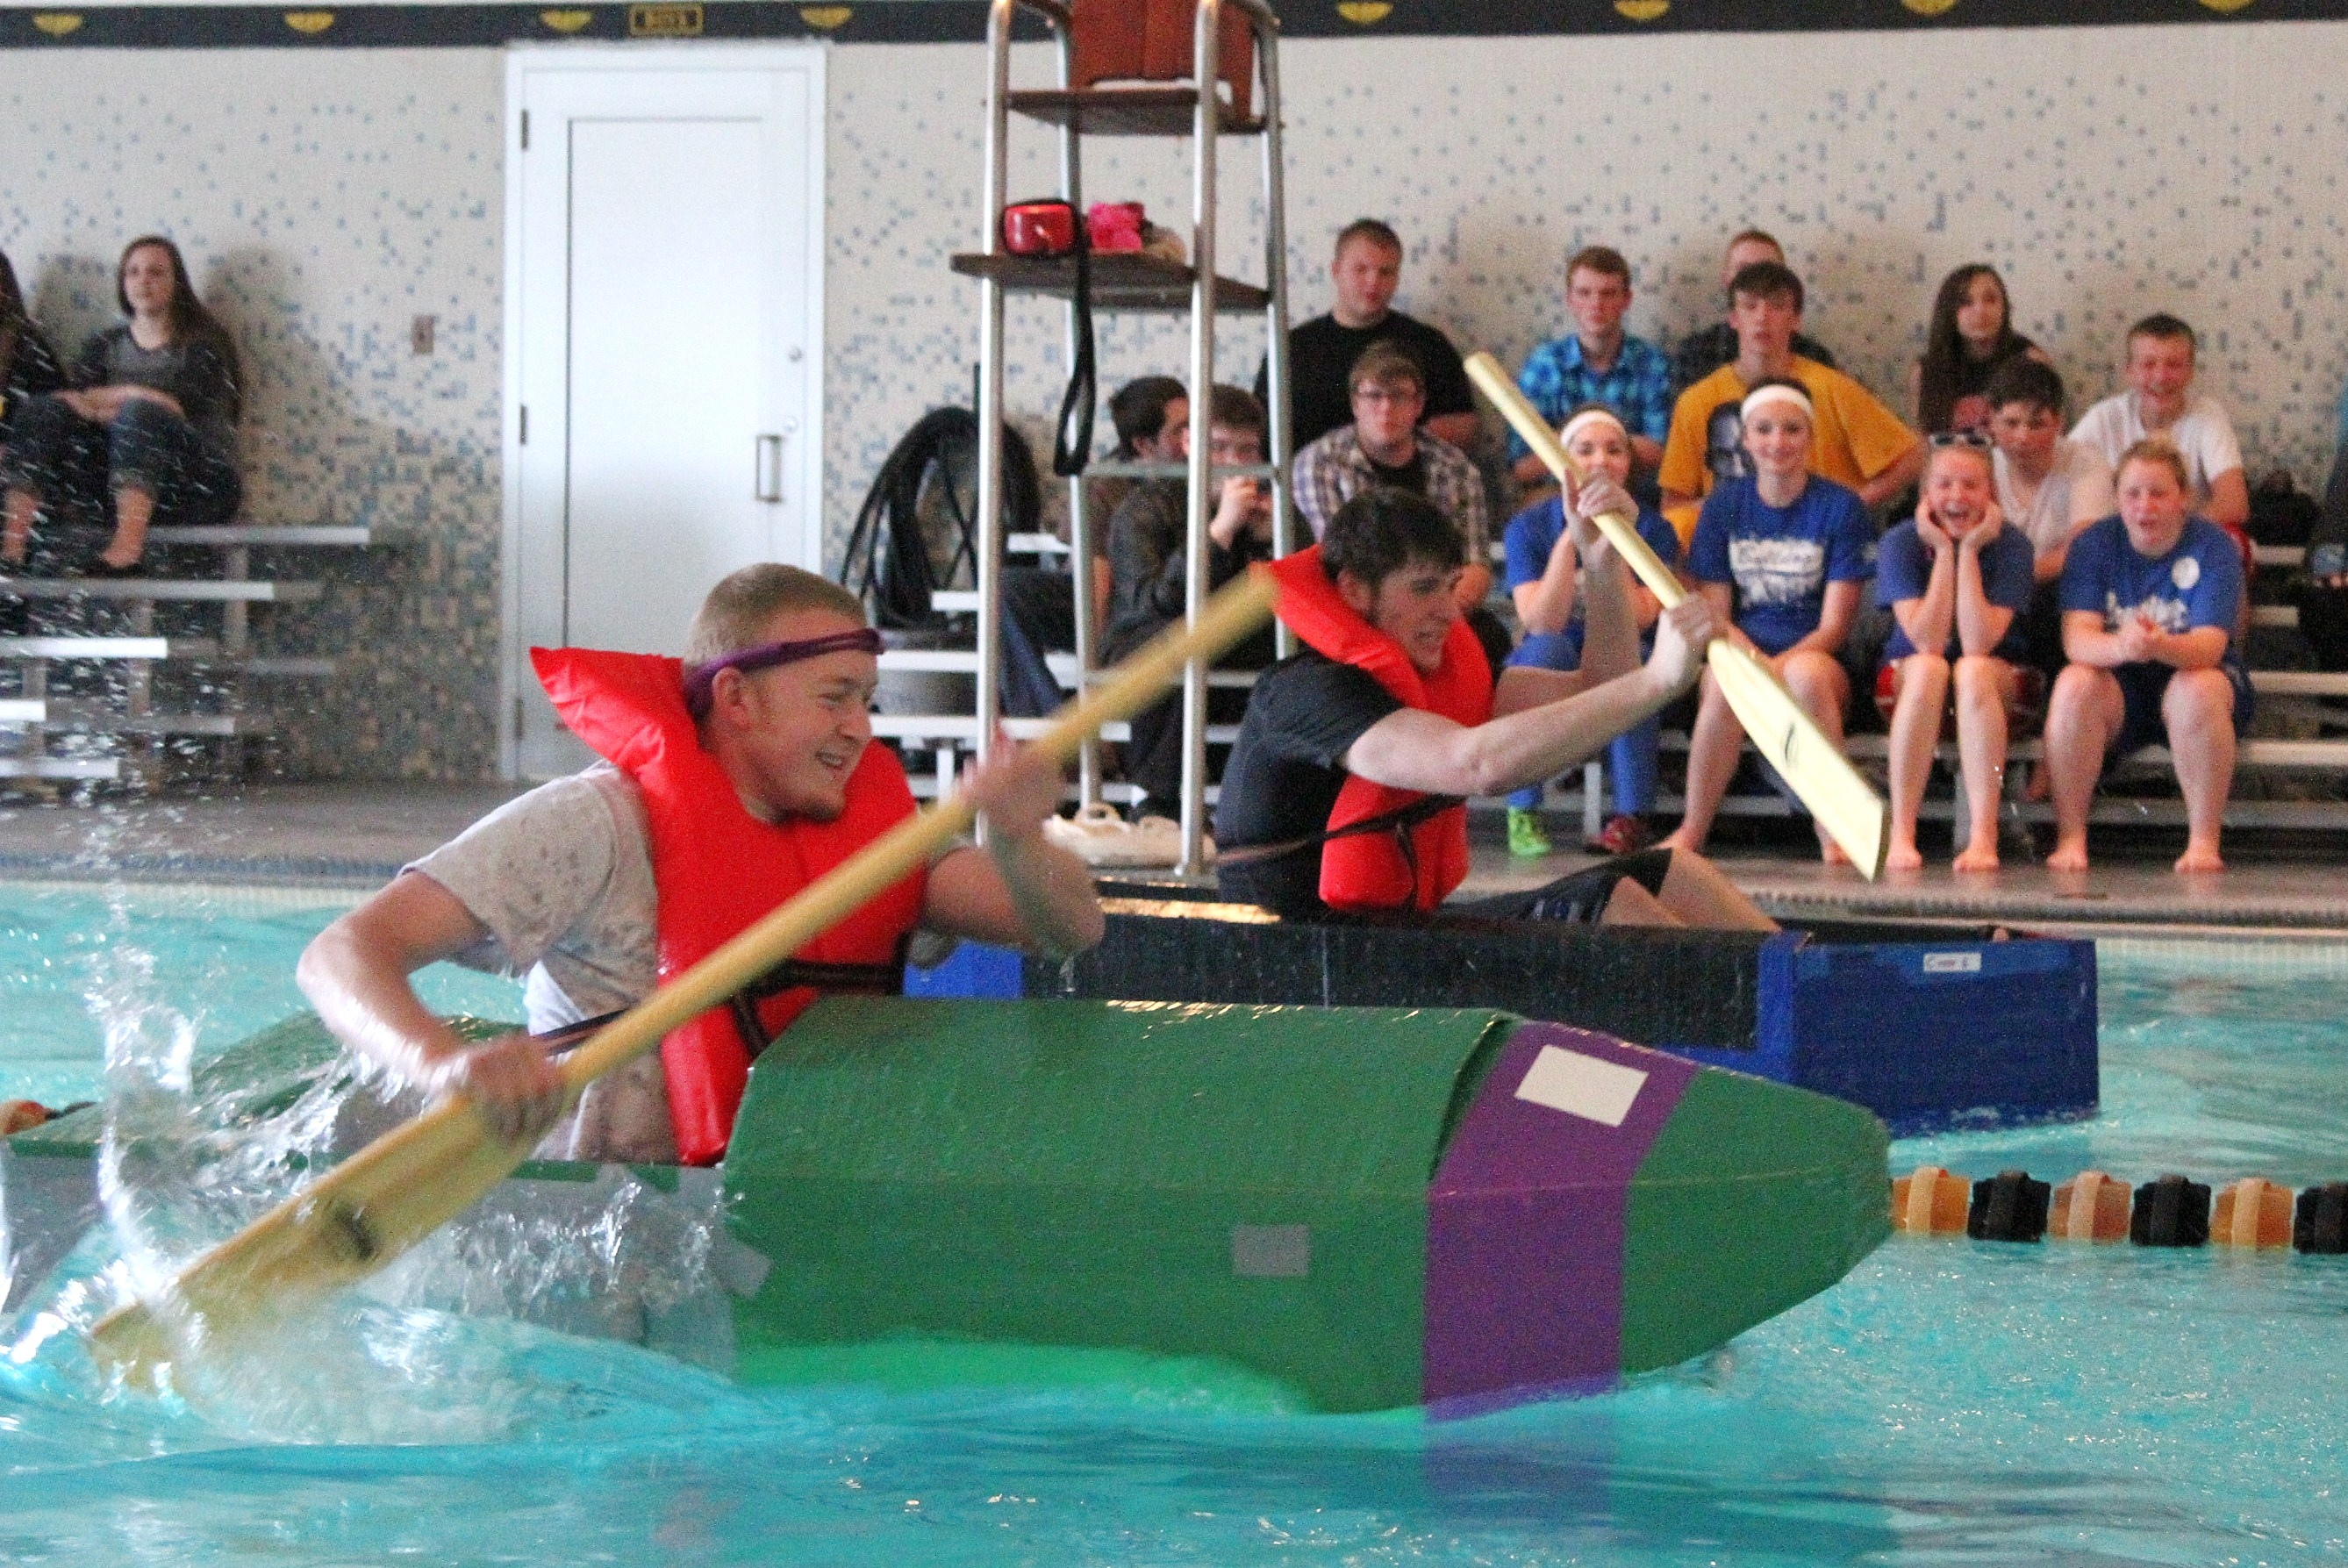 Crestline takes home top prize in the Cardboard Boat Regatta - Crawford County Now